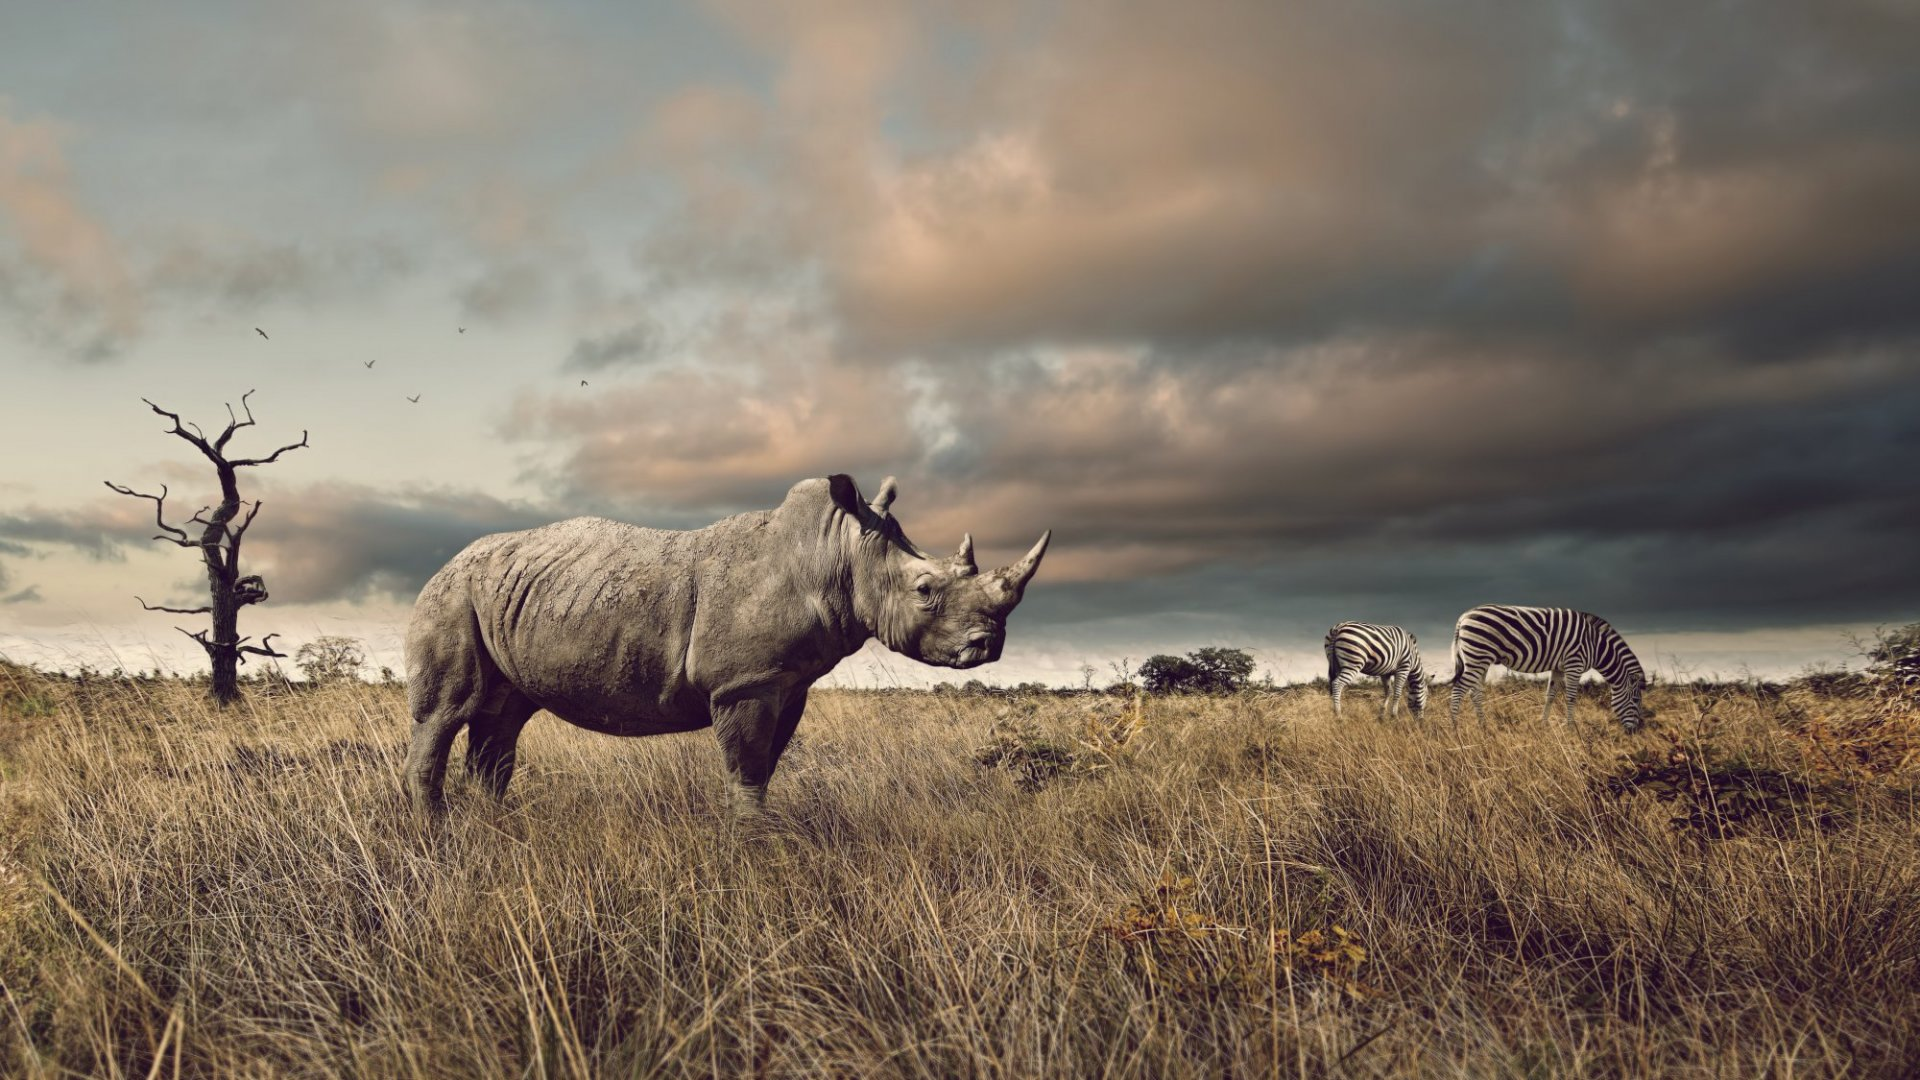 If South Africa Legalizes Rhino Horn Trade, Drones Will Be Key to Conservation